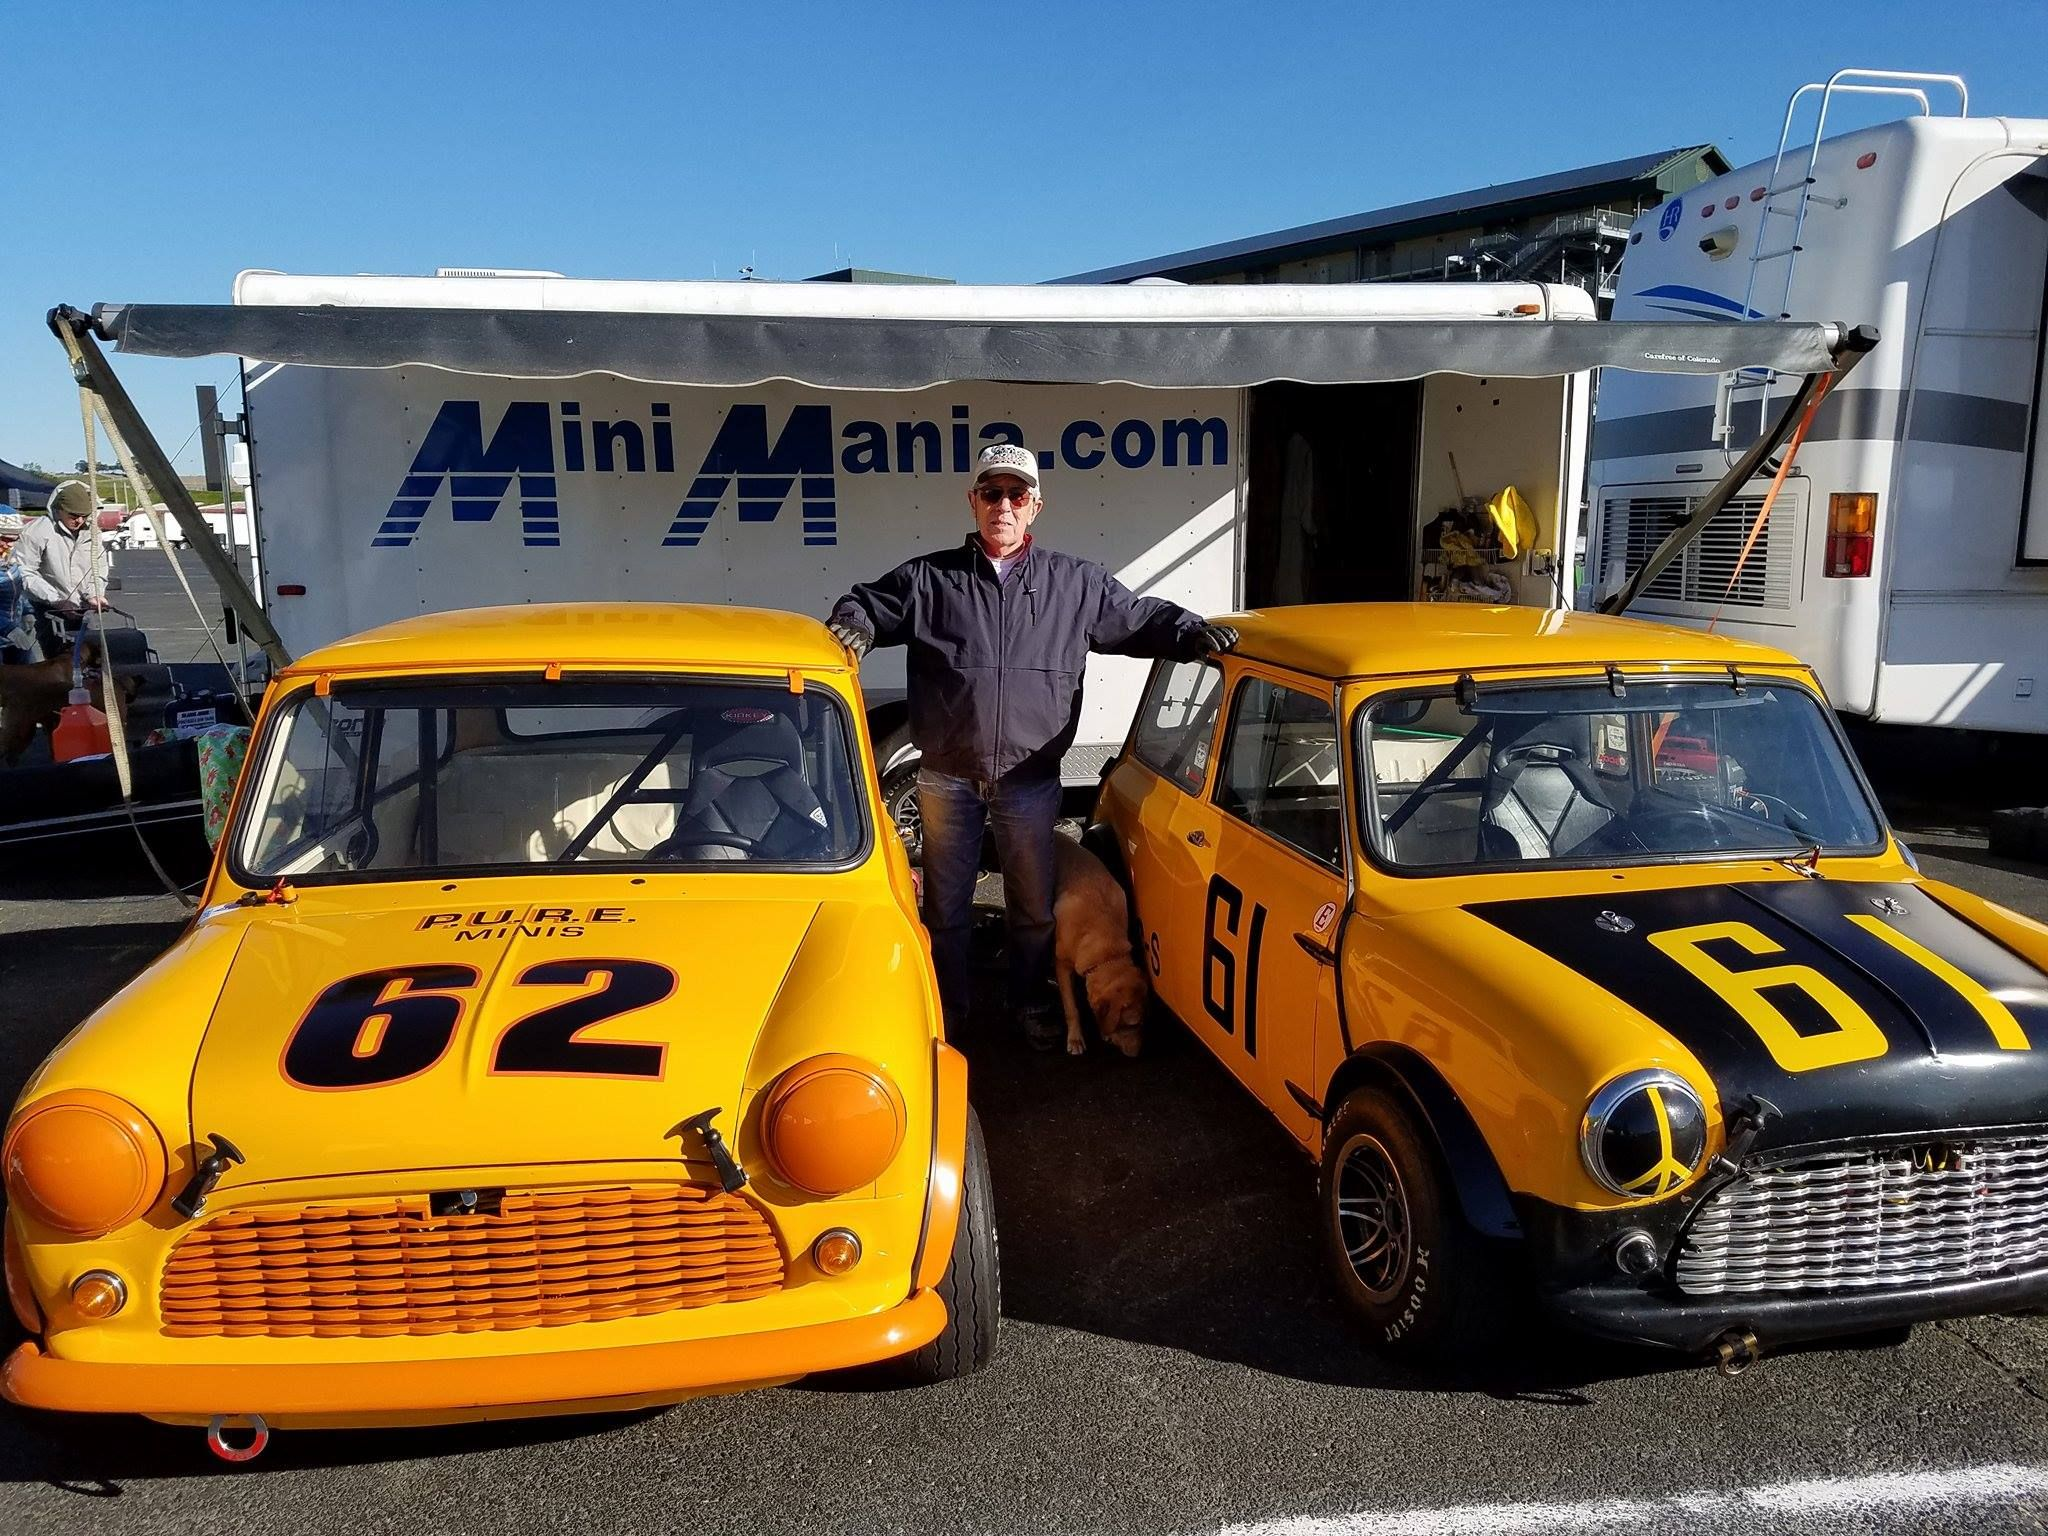 Don Racine, Founder of Mini Mania, with his Minis!